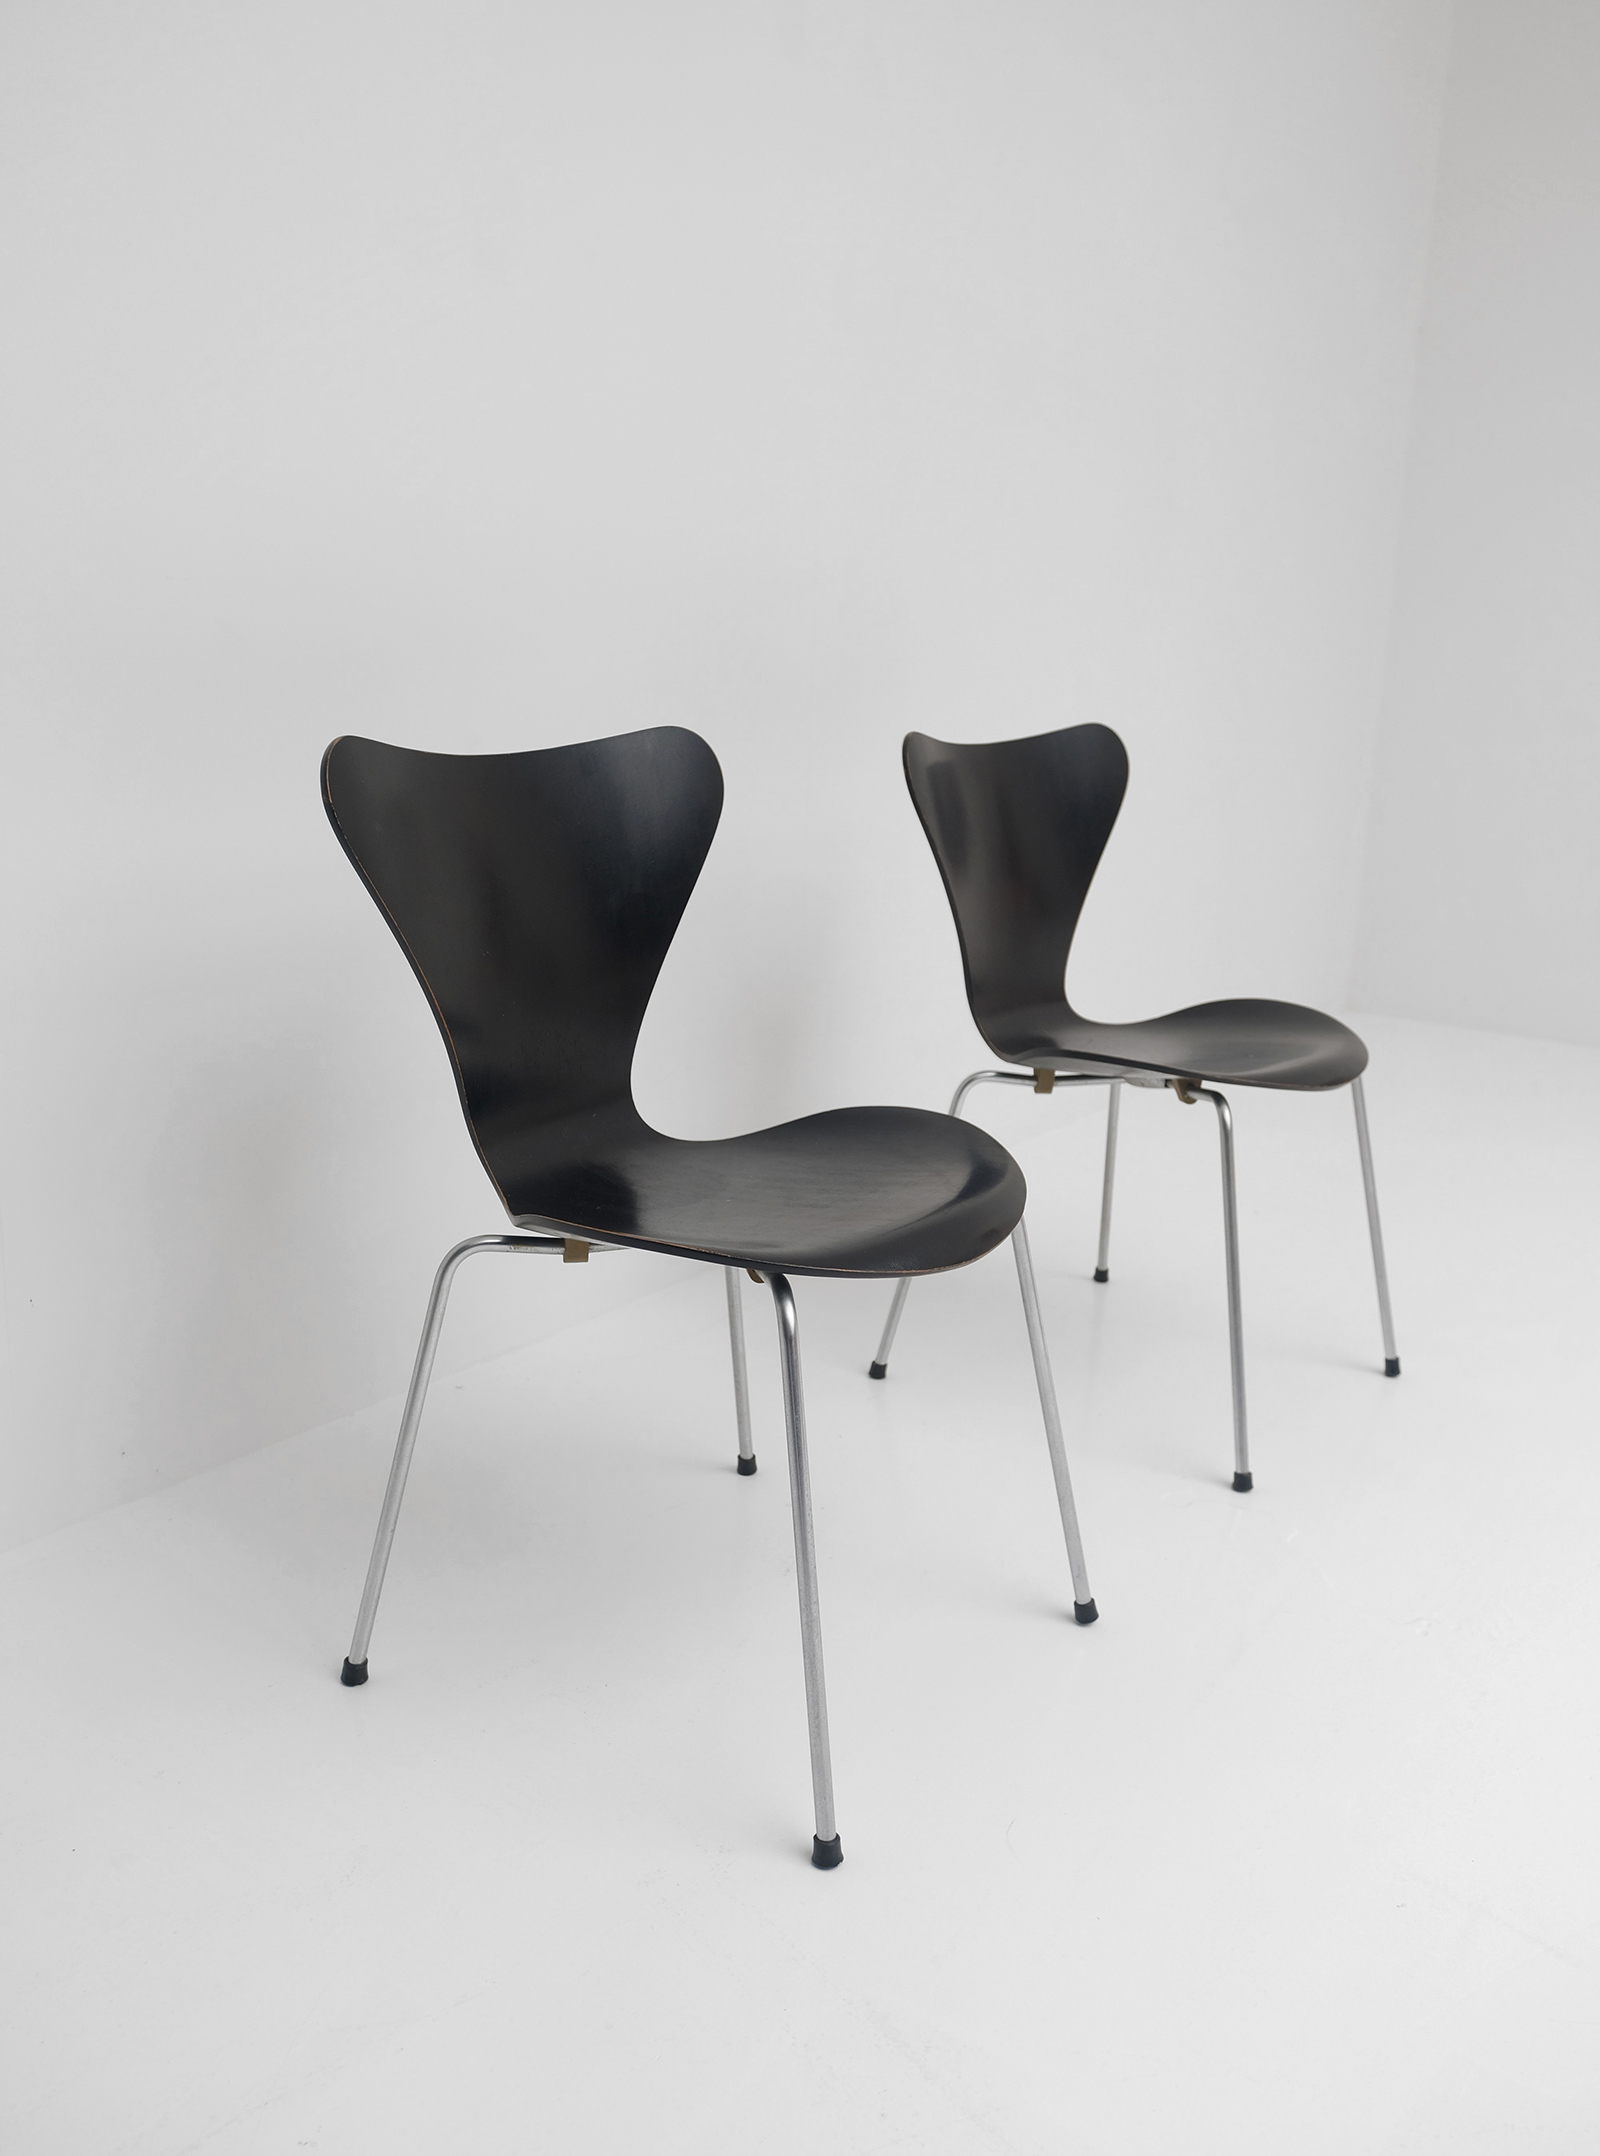 3107 Series Butterfly Chair by Arne Jacobsen for Fritz Hansen